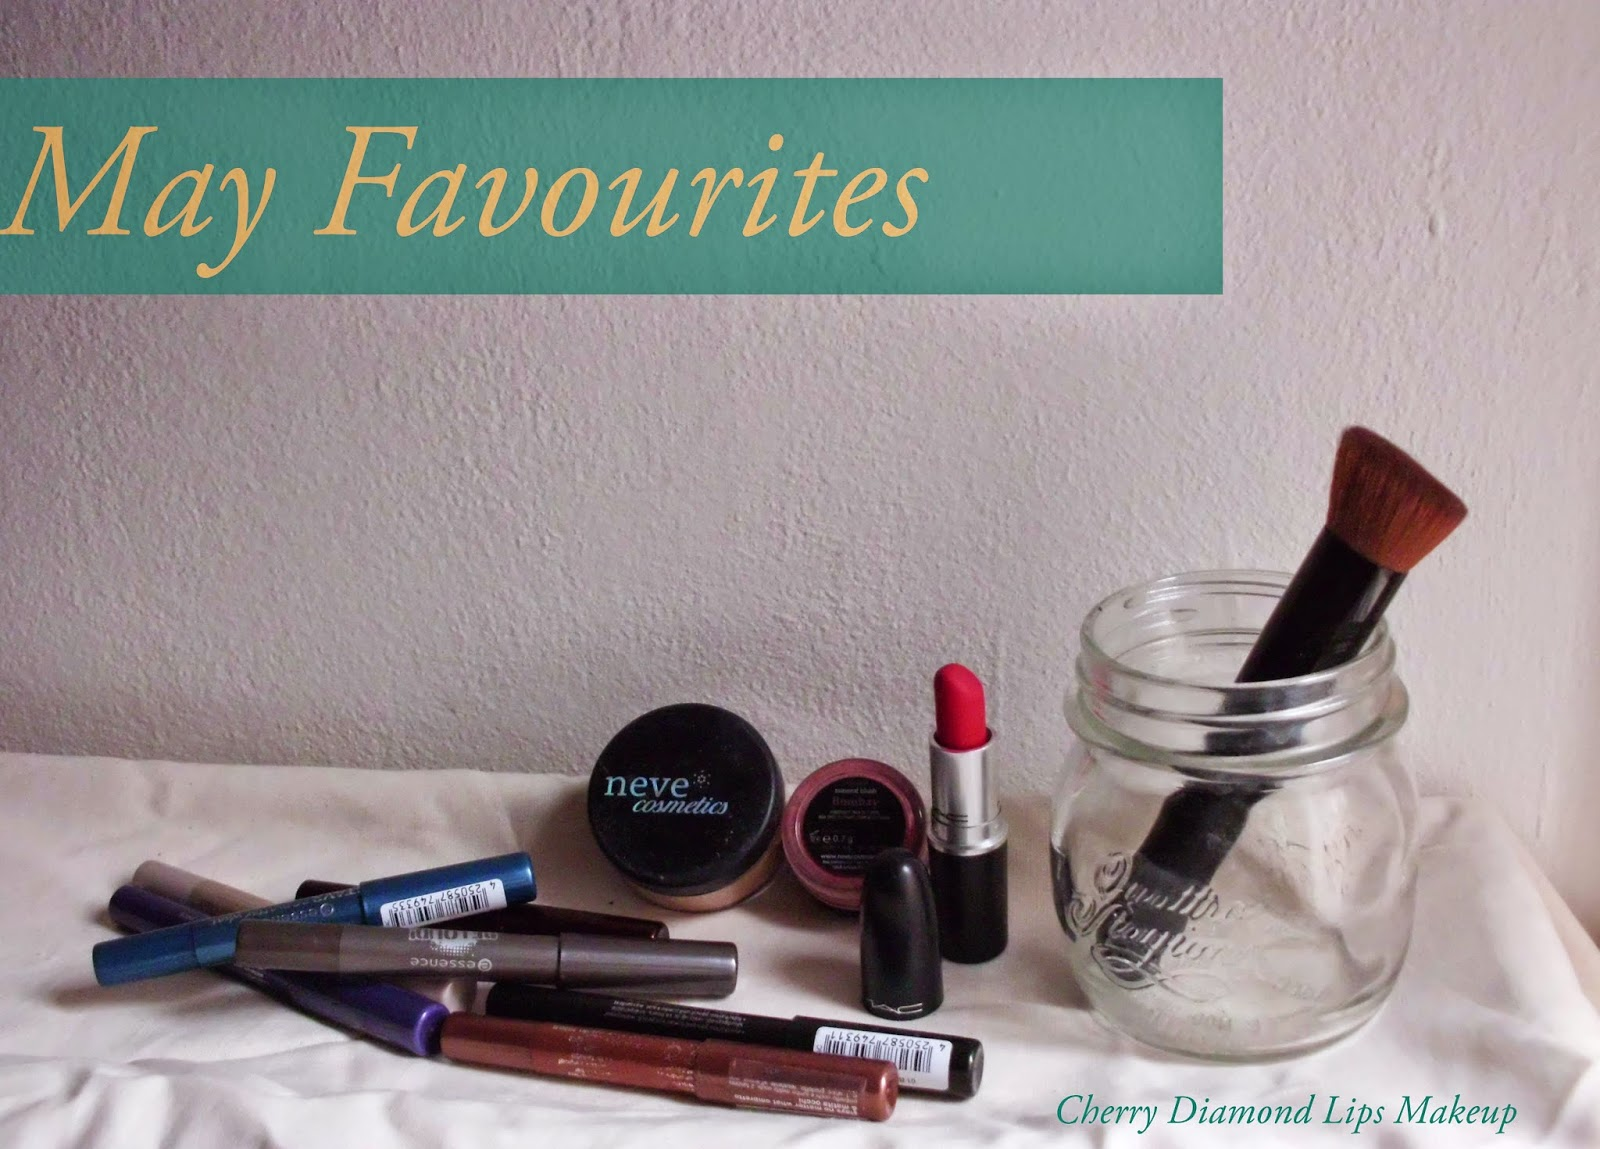 May Favourites, Neve Cosmetics, High Coverage Foundation Tan Warm, Relentlessly Red Mac, Stays No Matter What, Essence, Bombay, BB Cream Brush, H&M